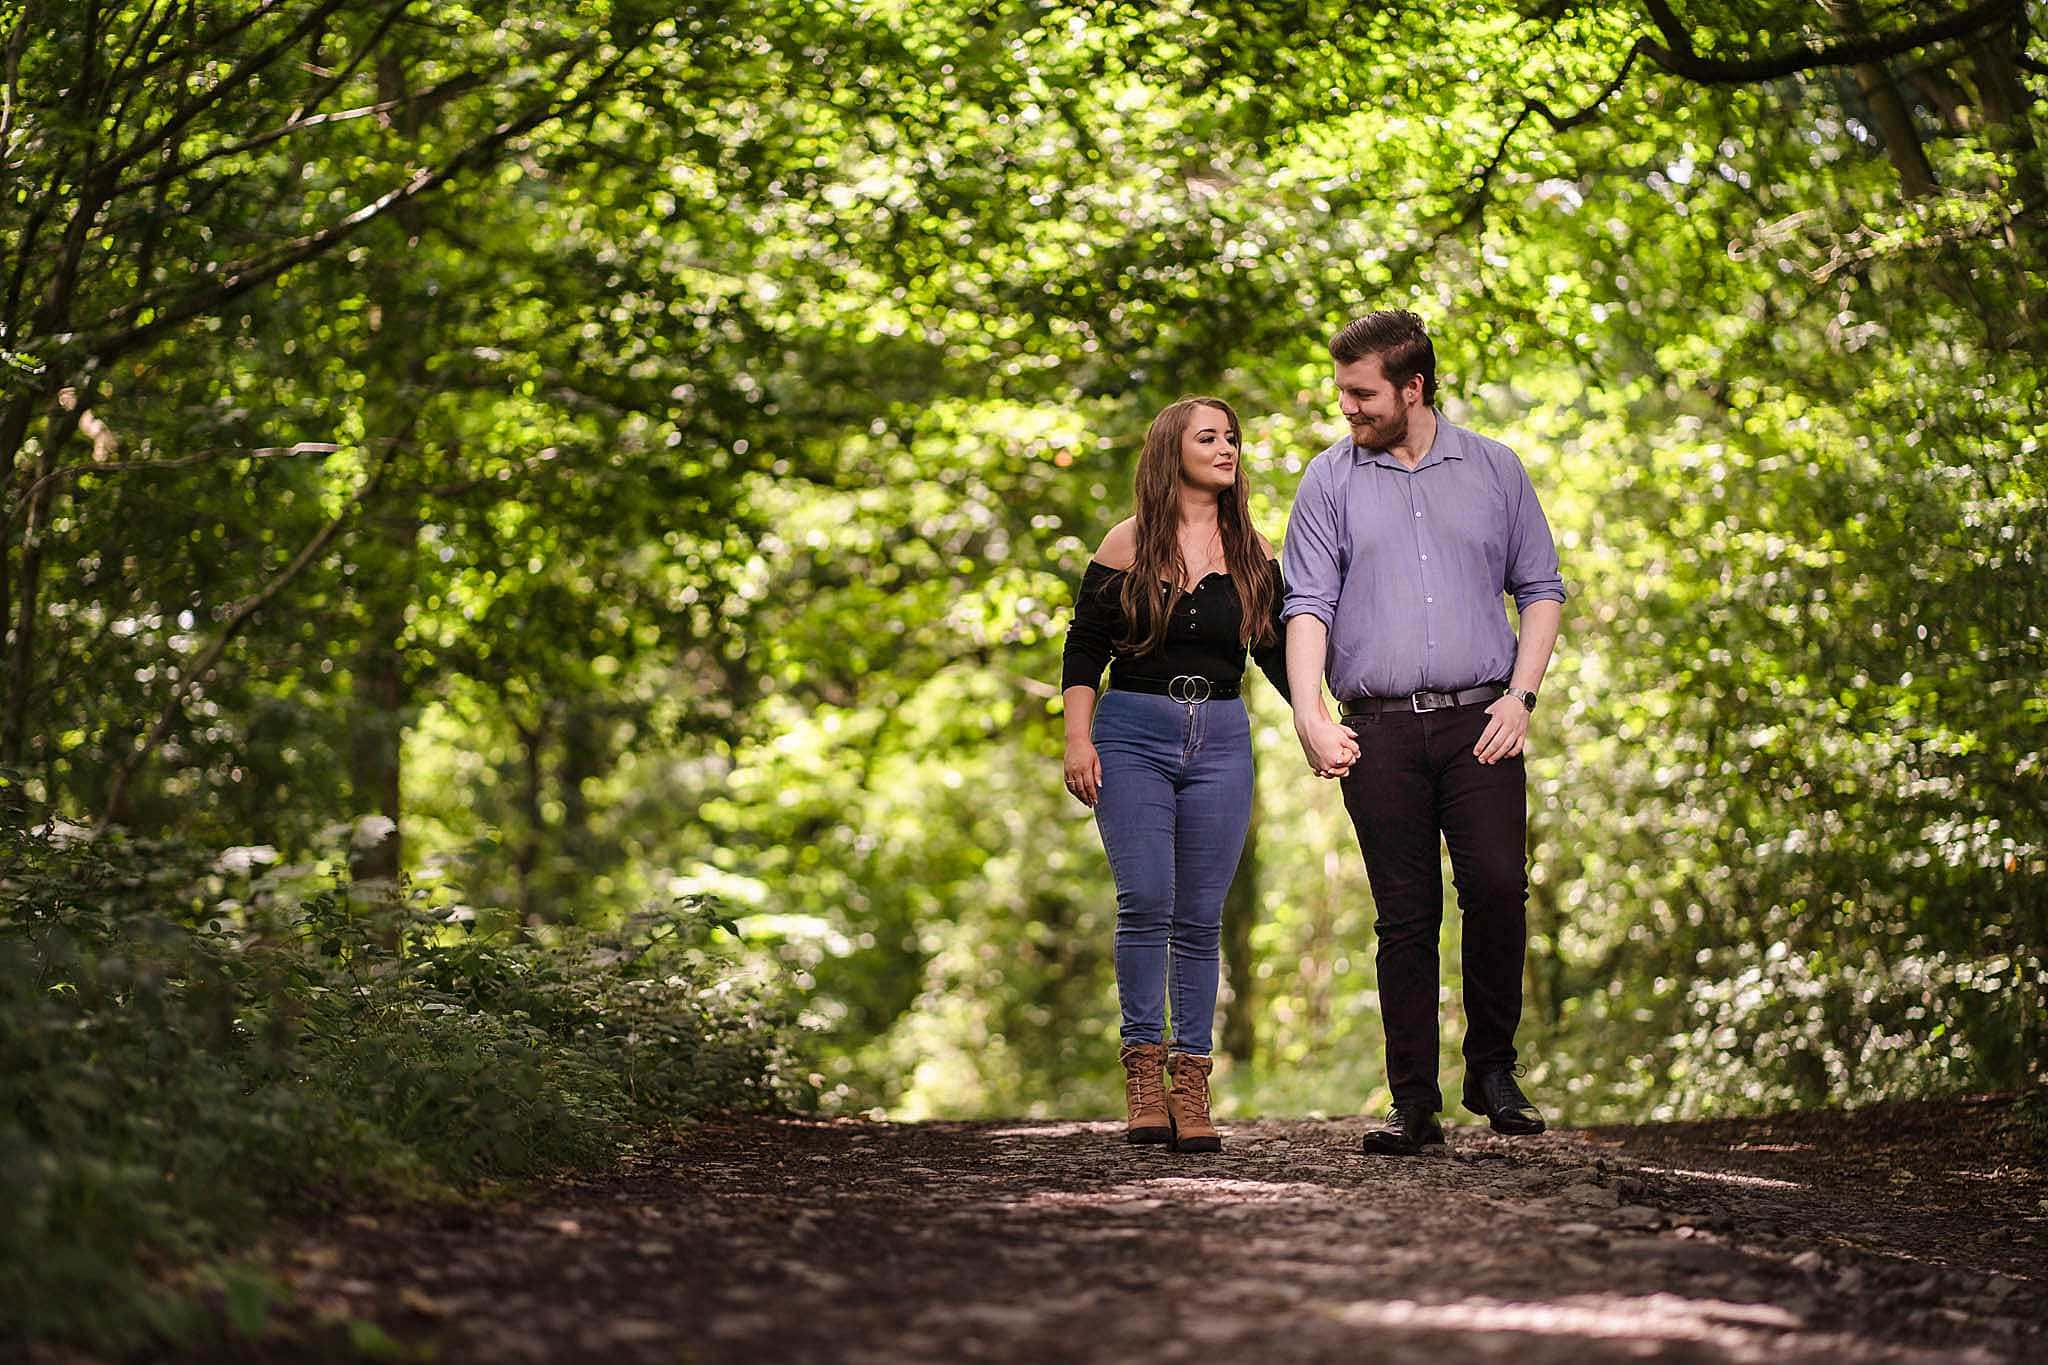 man and woman walk through swithland woods